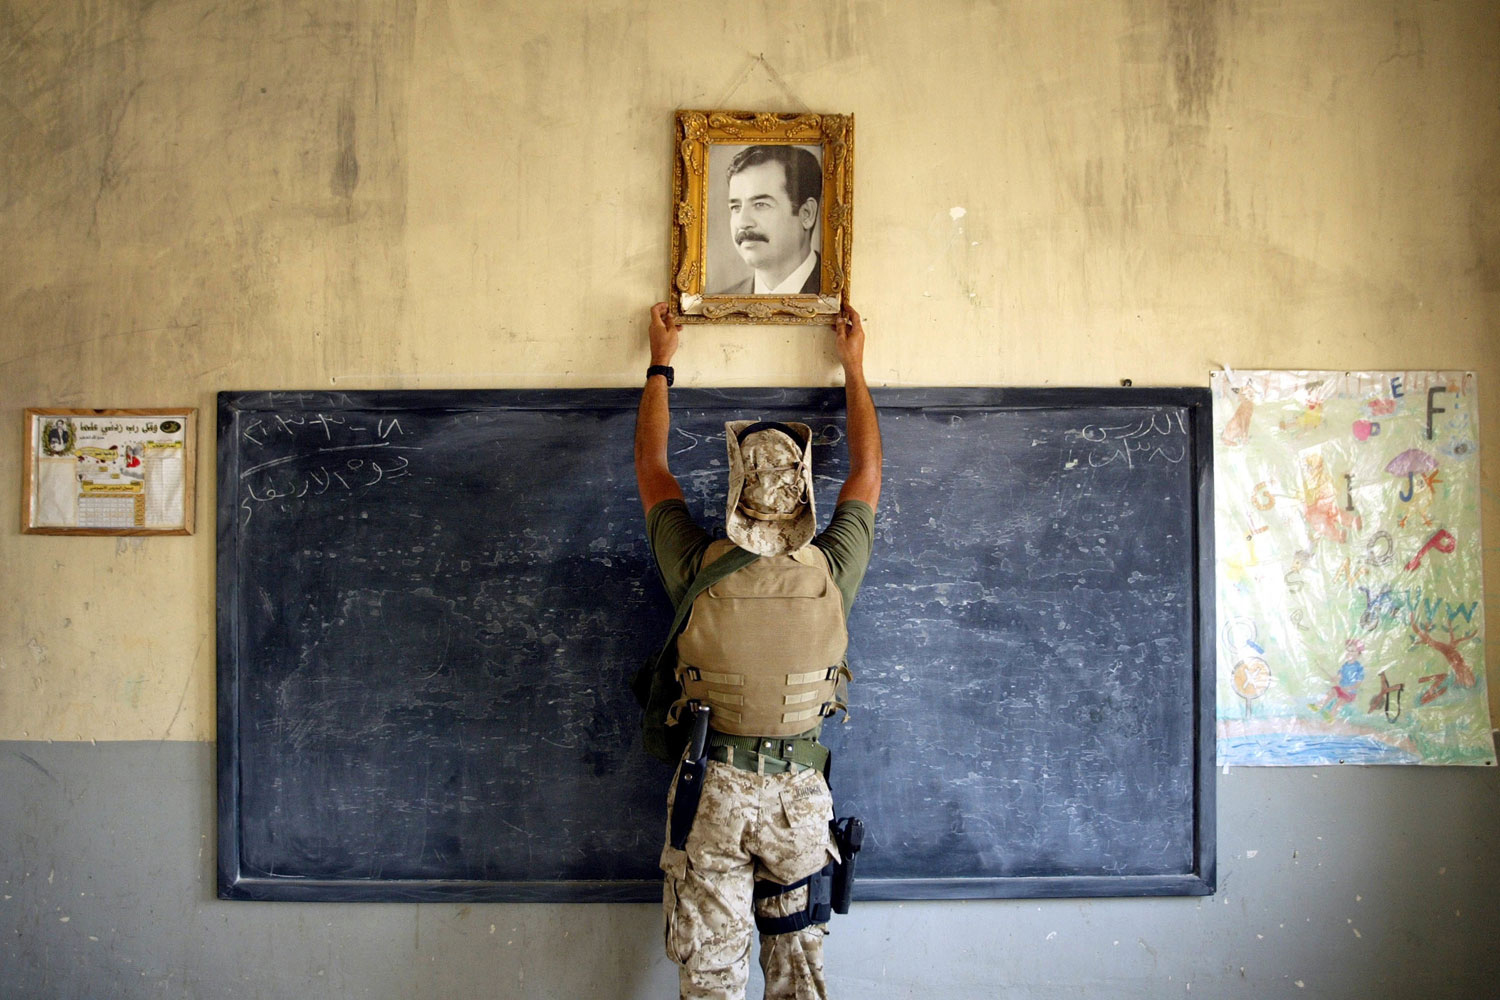 Al-Kut, Iraq  April 16 2003:  A U.S. Marine pulls down a picture of Saddam Hussein at a school. A combination team of Marines, Army and Special Forces went to schools and other facilities in Al-Kut looking for weapons caches and unexploded bombs.